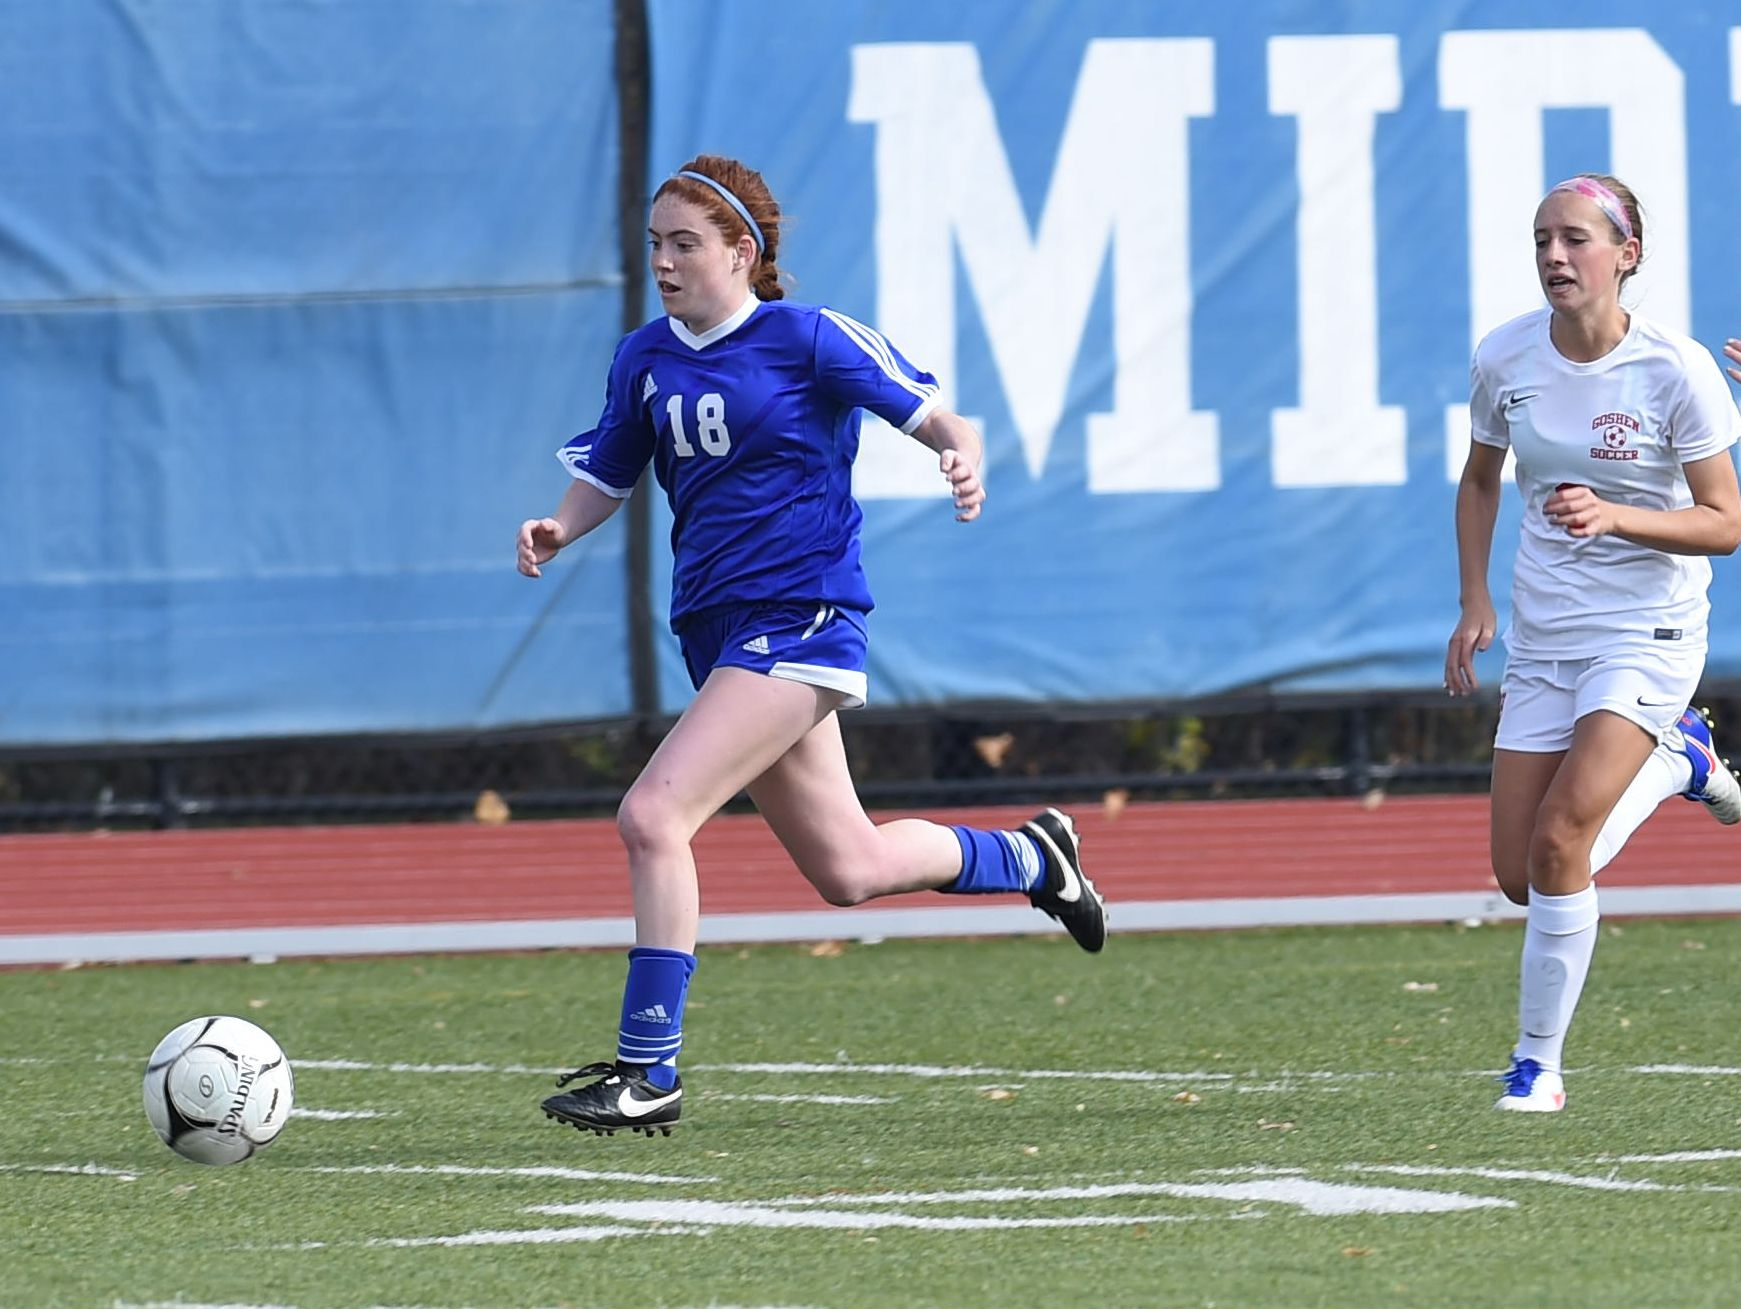 Pearl River's Shaelynn Guilfoyle, left, takes the ball down the field during Saturday's Class A regional final against Goshen.